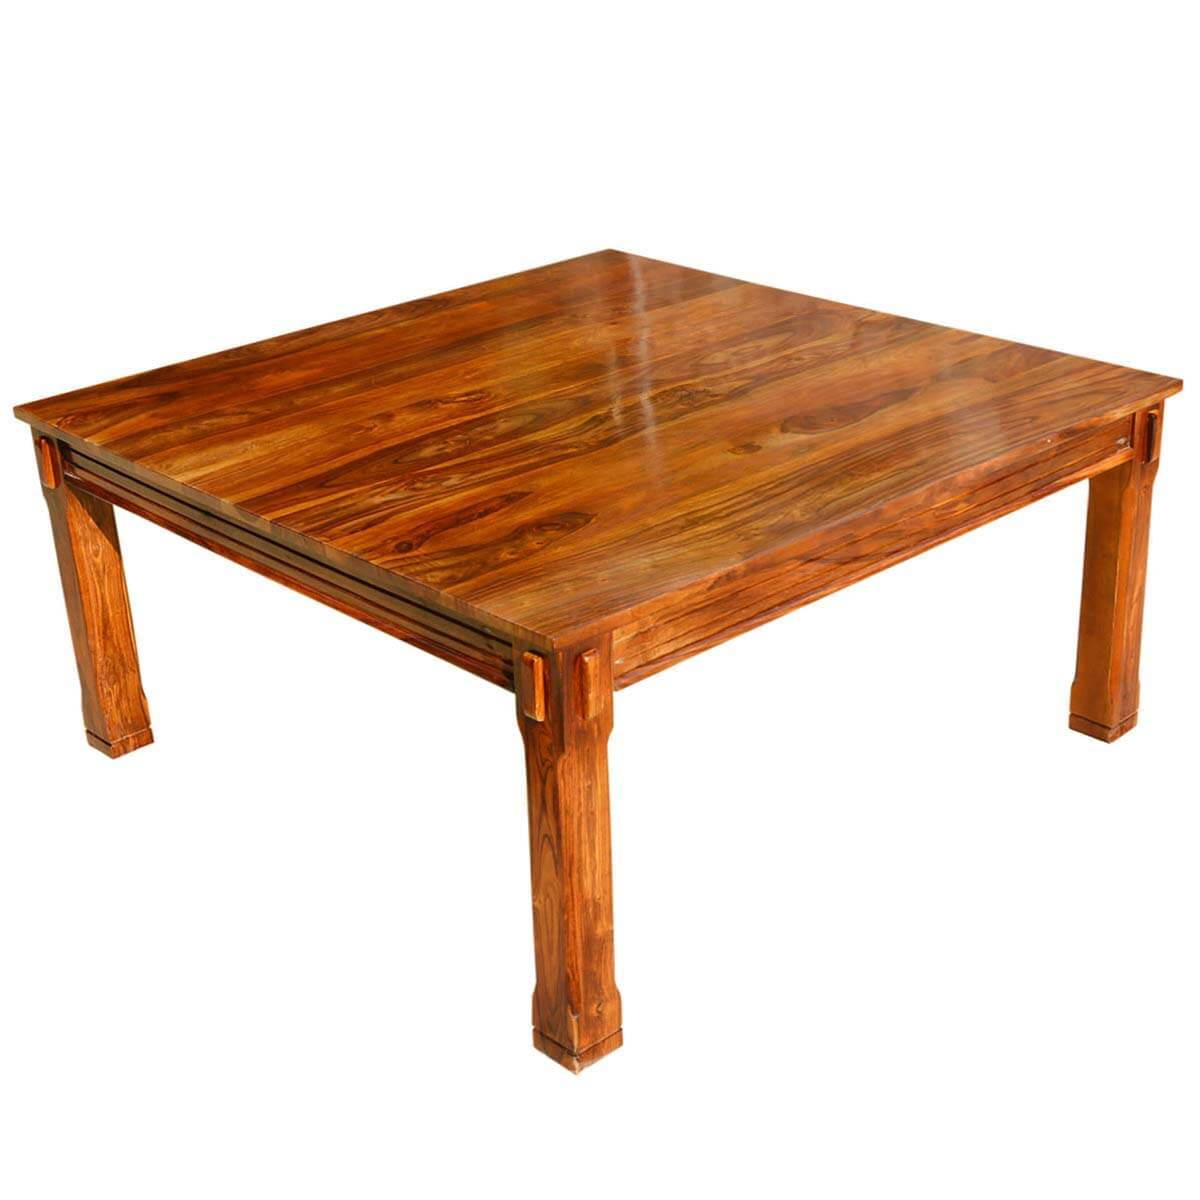 Rustic Wooden Dining Tables ~ Rustic solid wood square block legs dining table